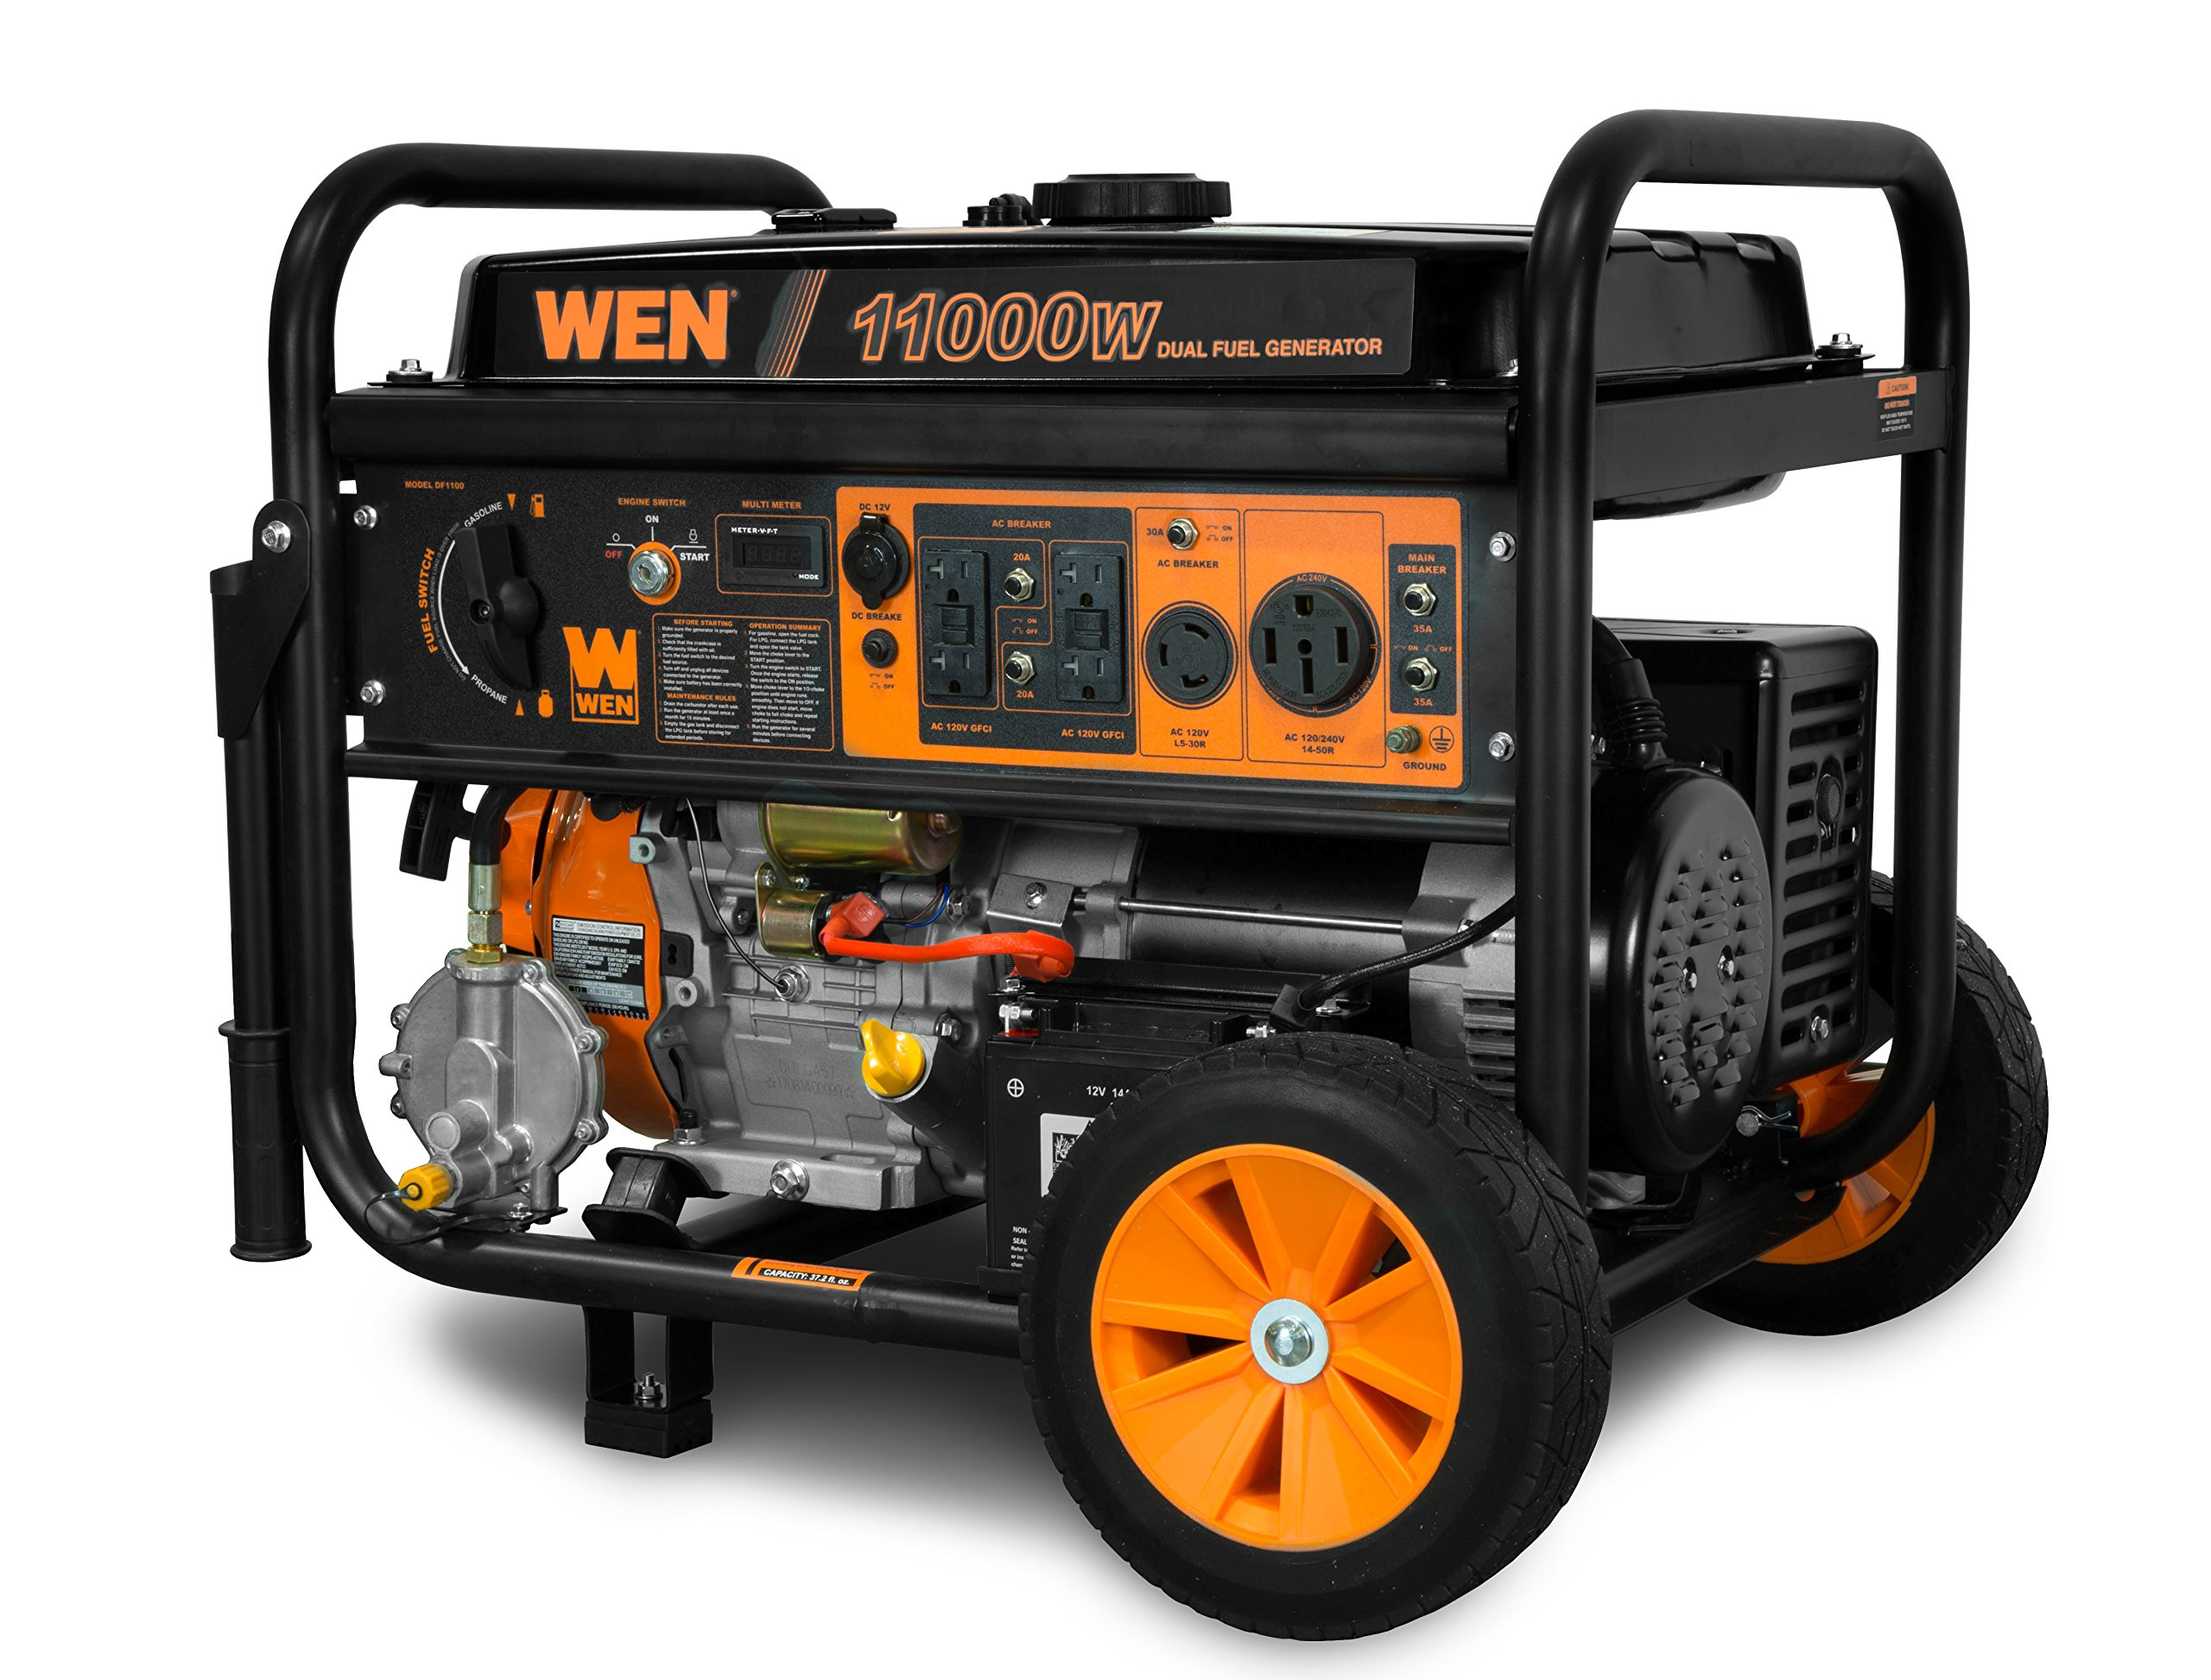 WEN DF1100T 11,000-Watt 120V/240V Dual Fuel Portable Generator with Wheel Kit and Electric Start - CARB Compliant, Black by WEN